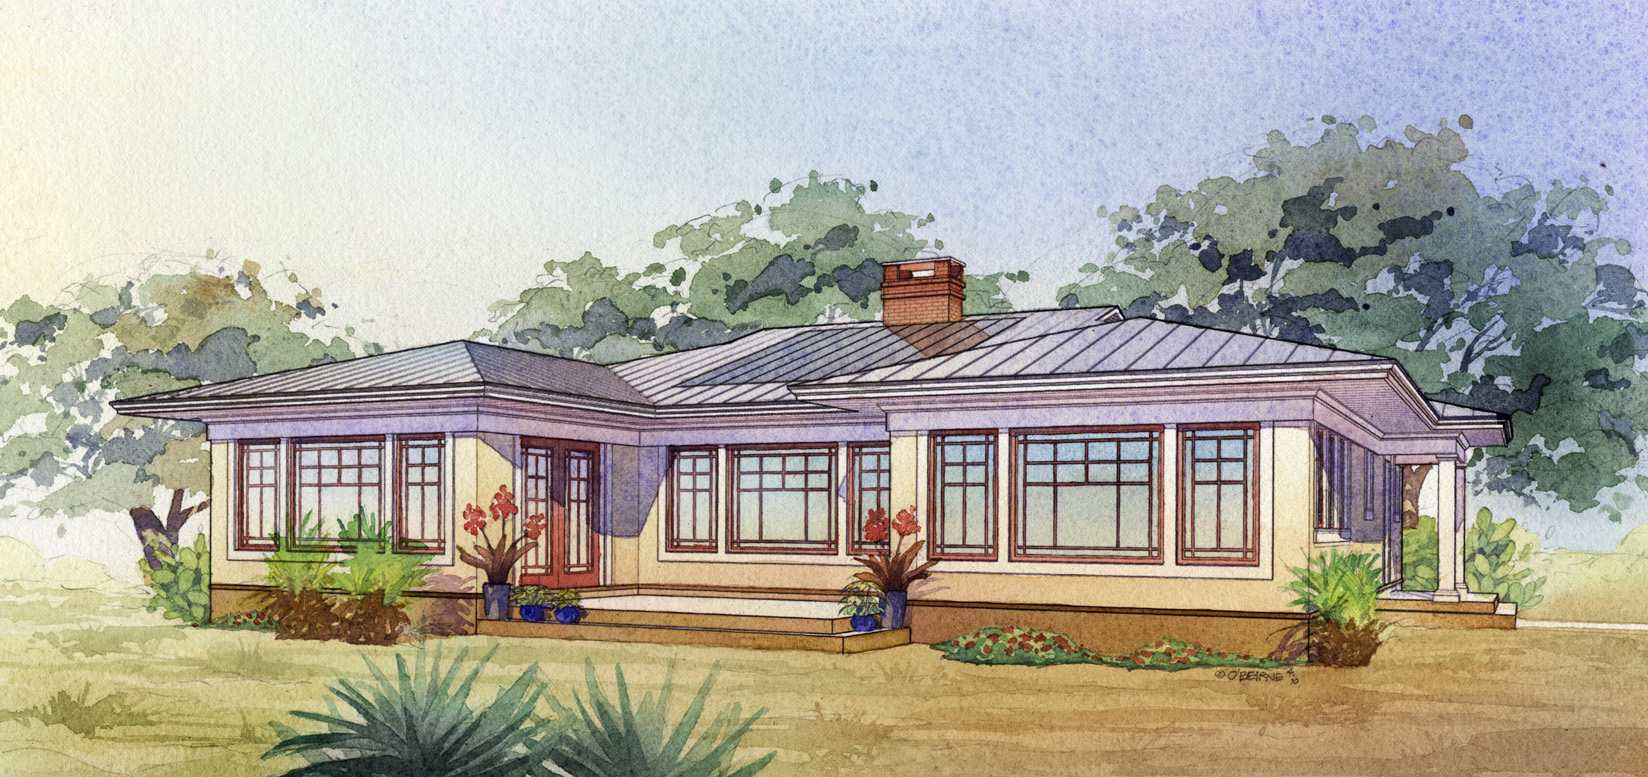 Southwest solar house plans home design and style for Southwest house designs